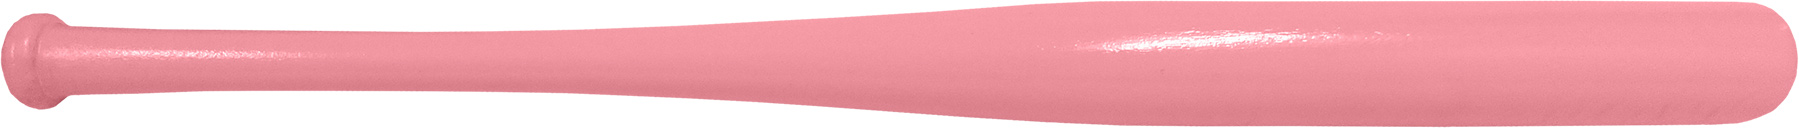 novelty pink baseball bat souvenir baseball bat